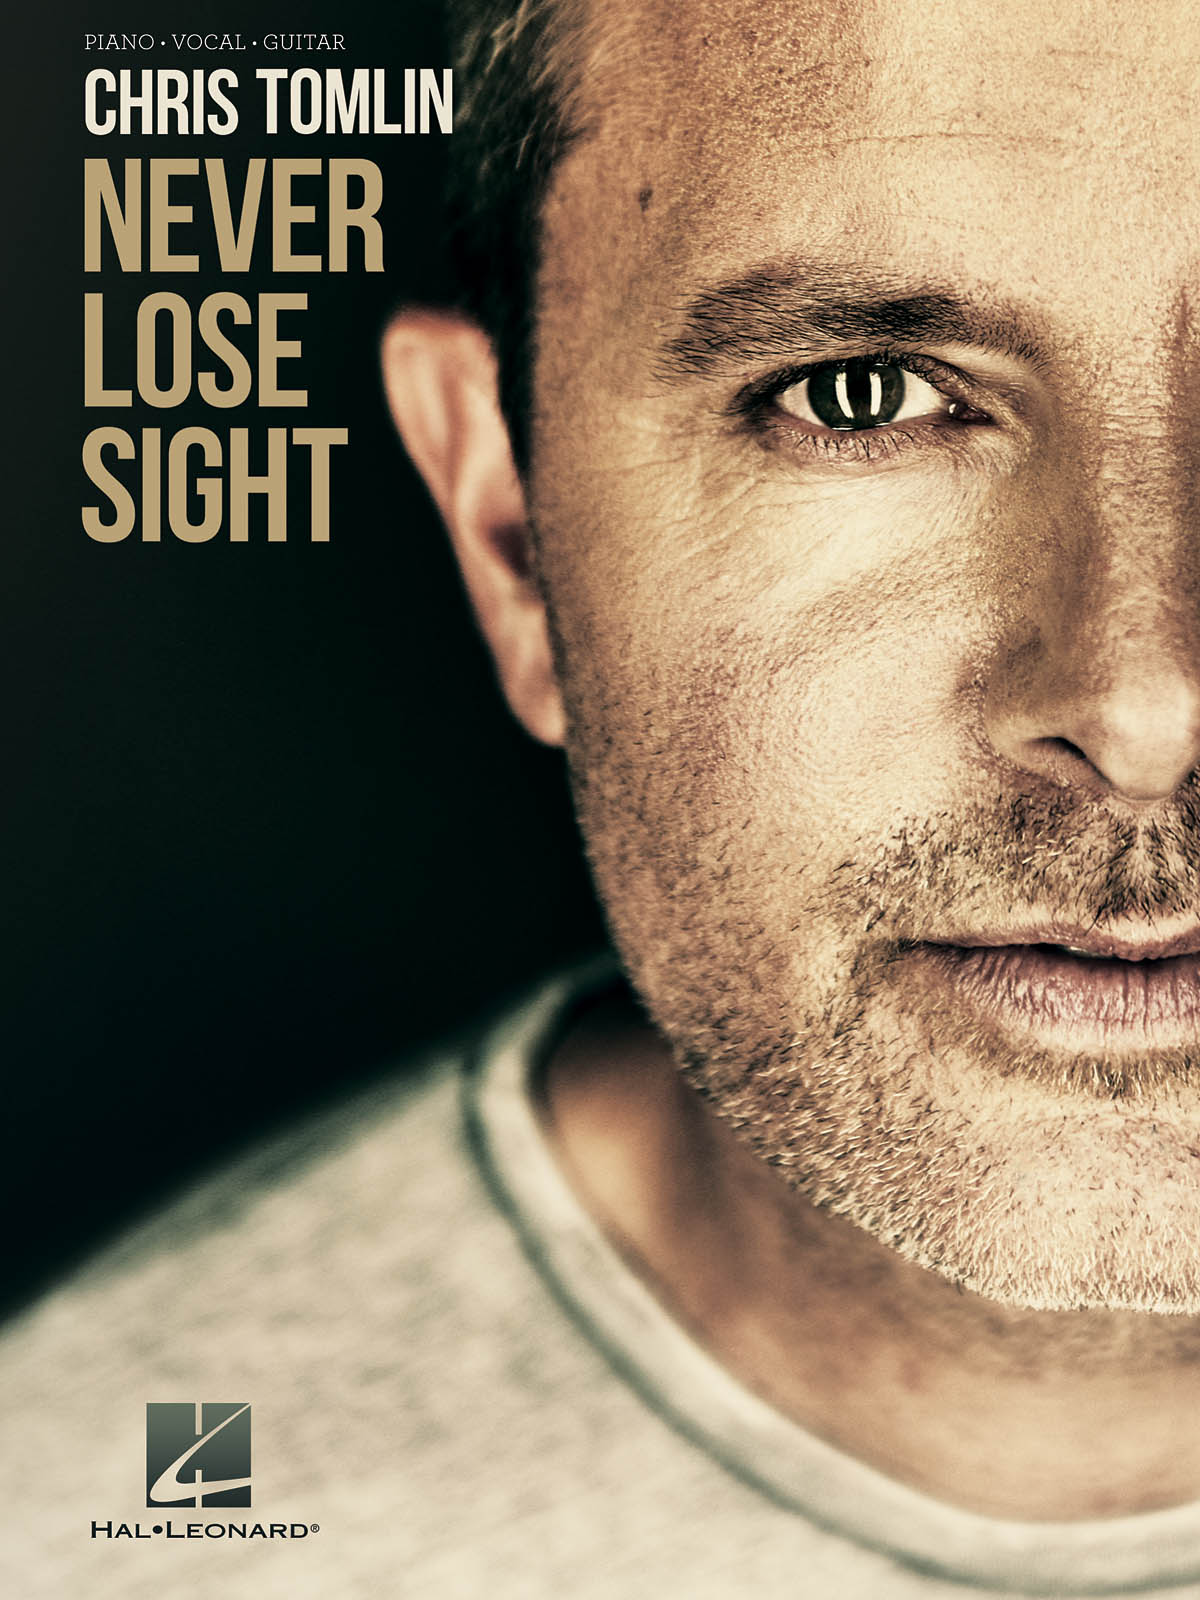 Chris Tomlin - Never Lose Sight: Piano  Vocal and Guitar: Album Songbook